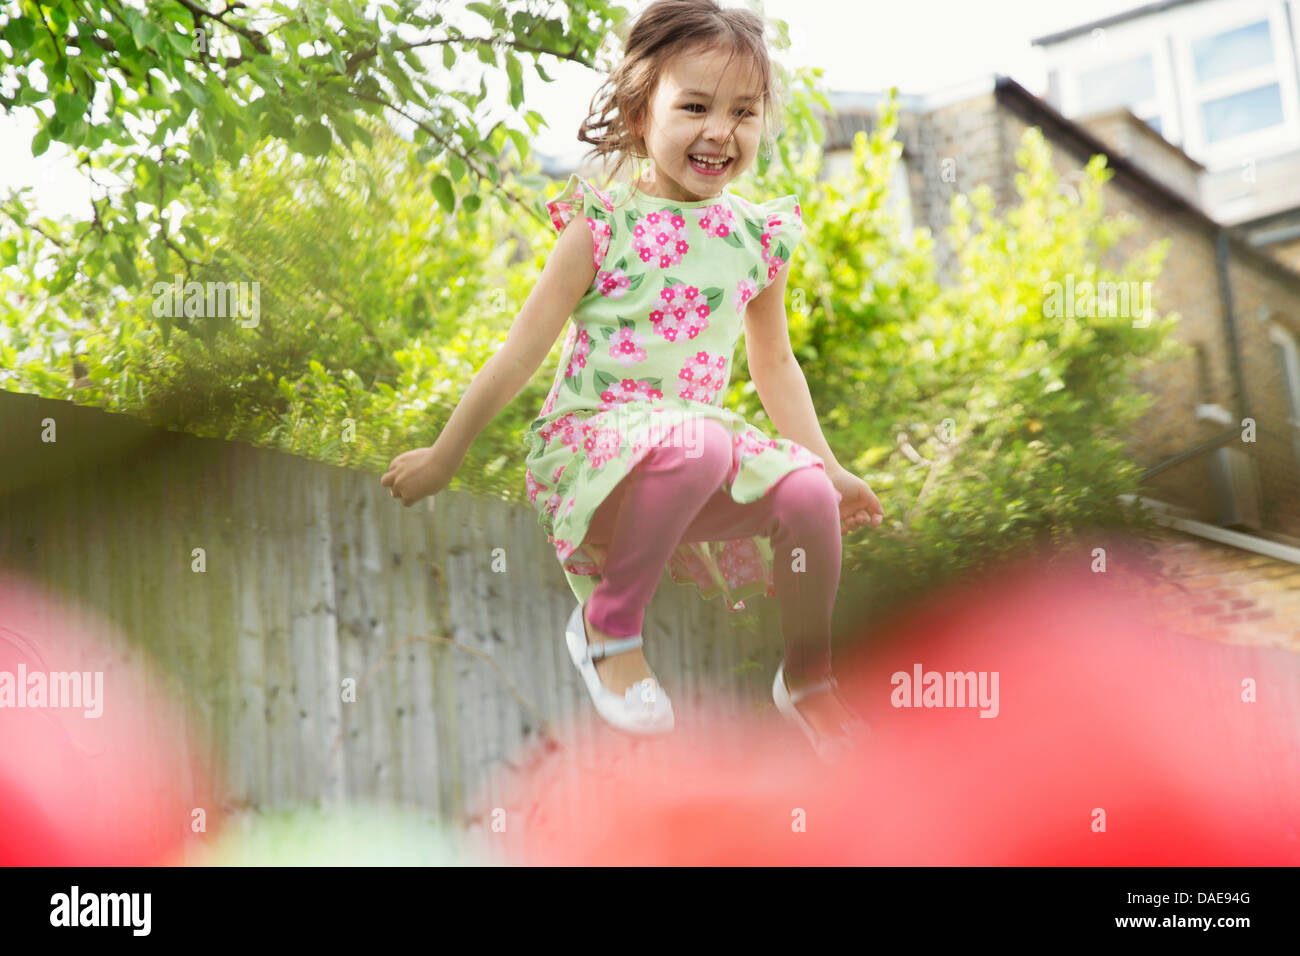 Young girl jumping mid air in garden - Stock Image